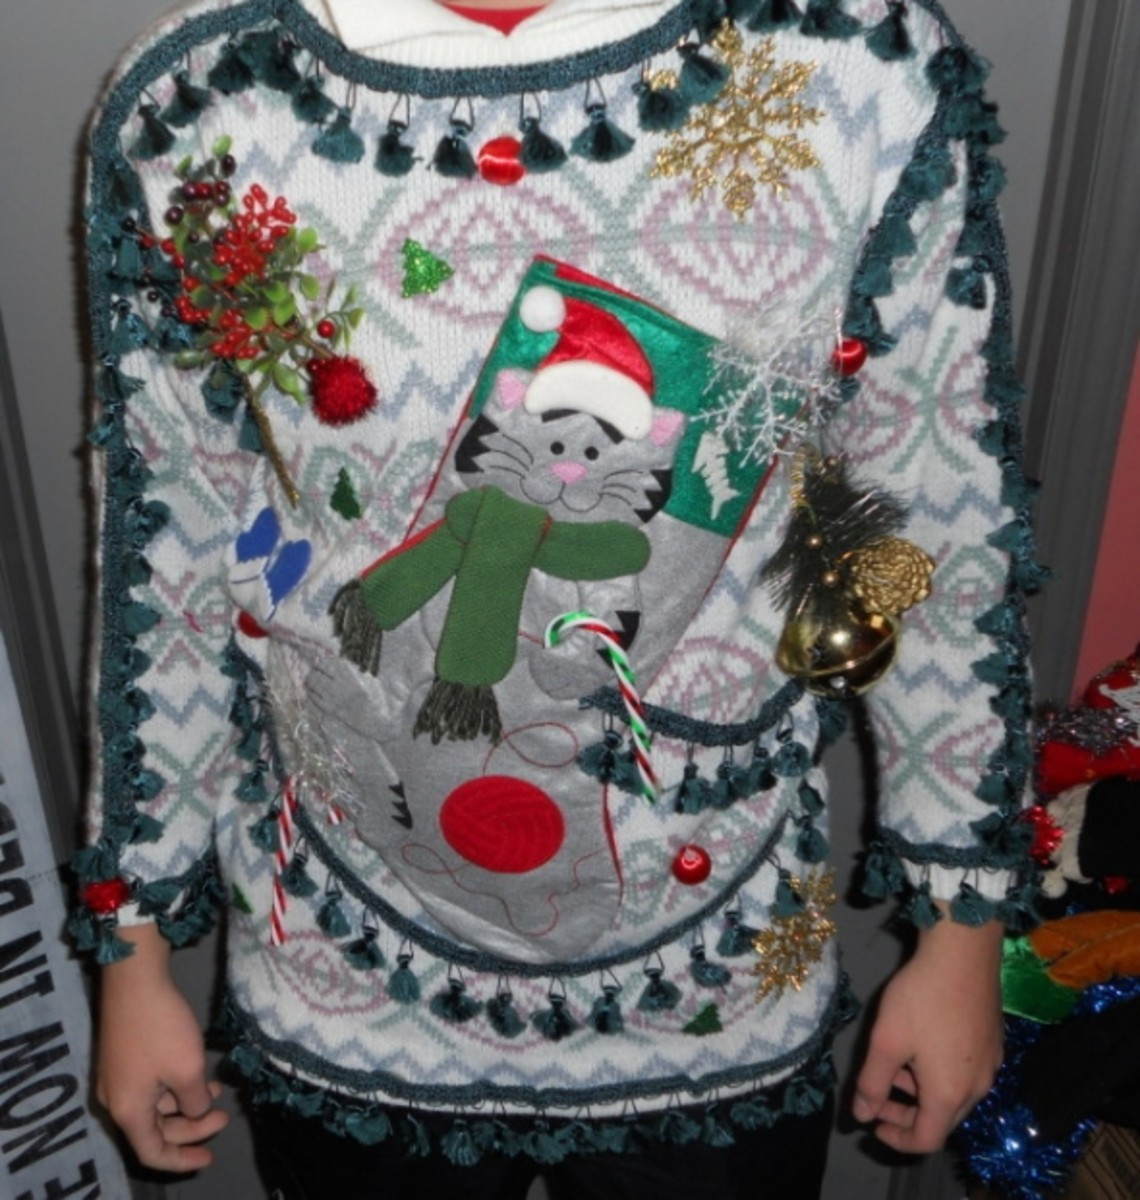 Click the eBay link below to see more Vintage Ugly Christmas Sweaters for inspiration or purchase